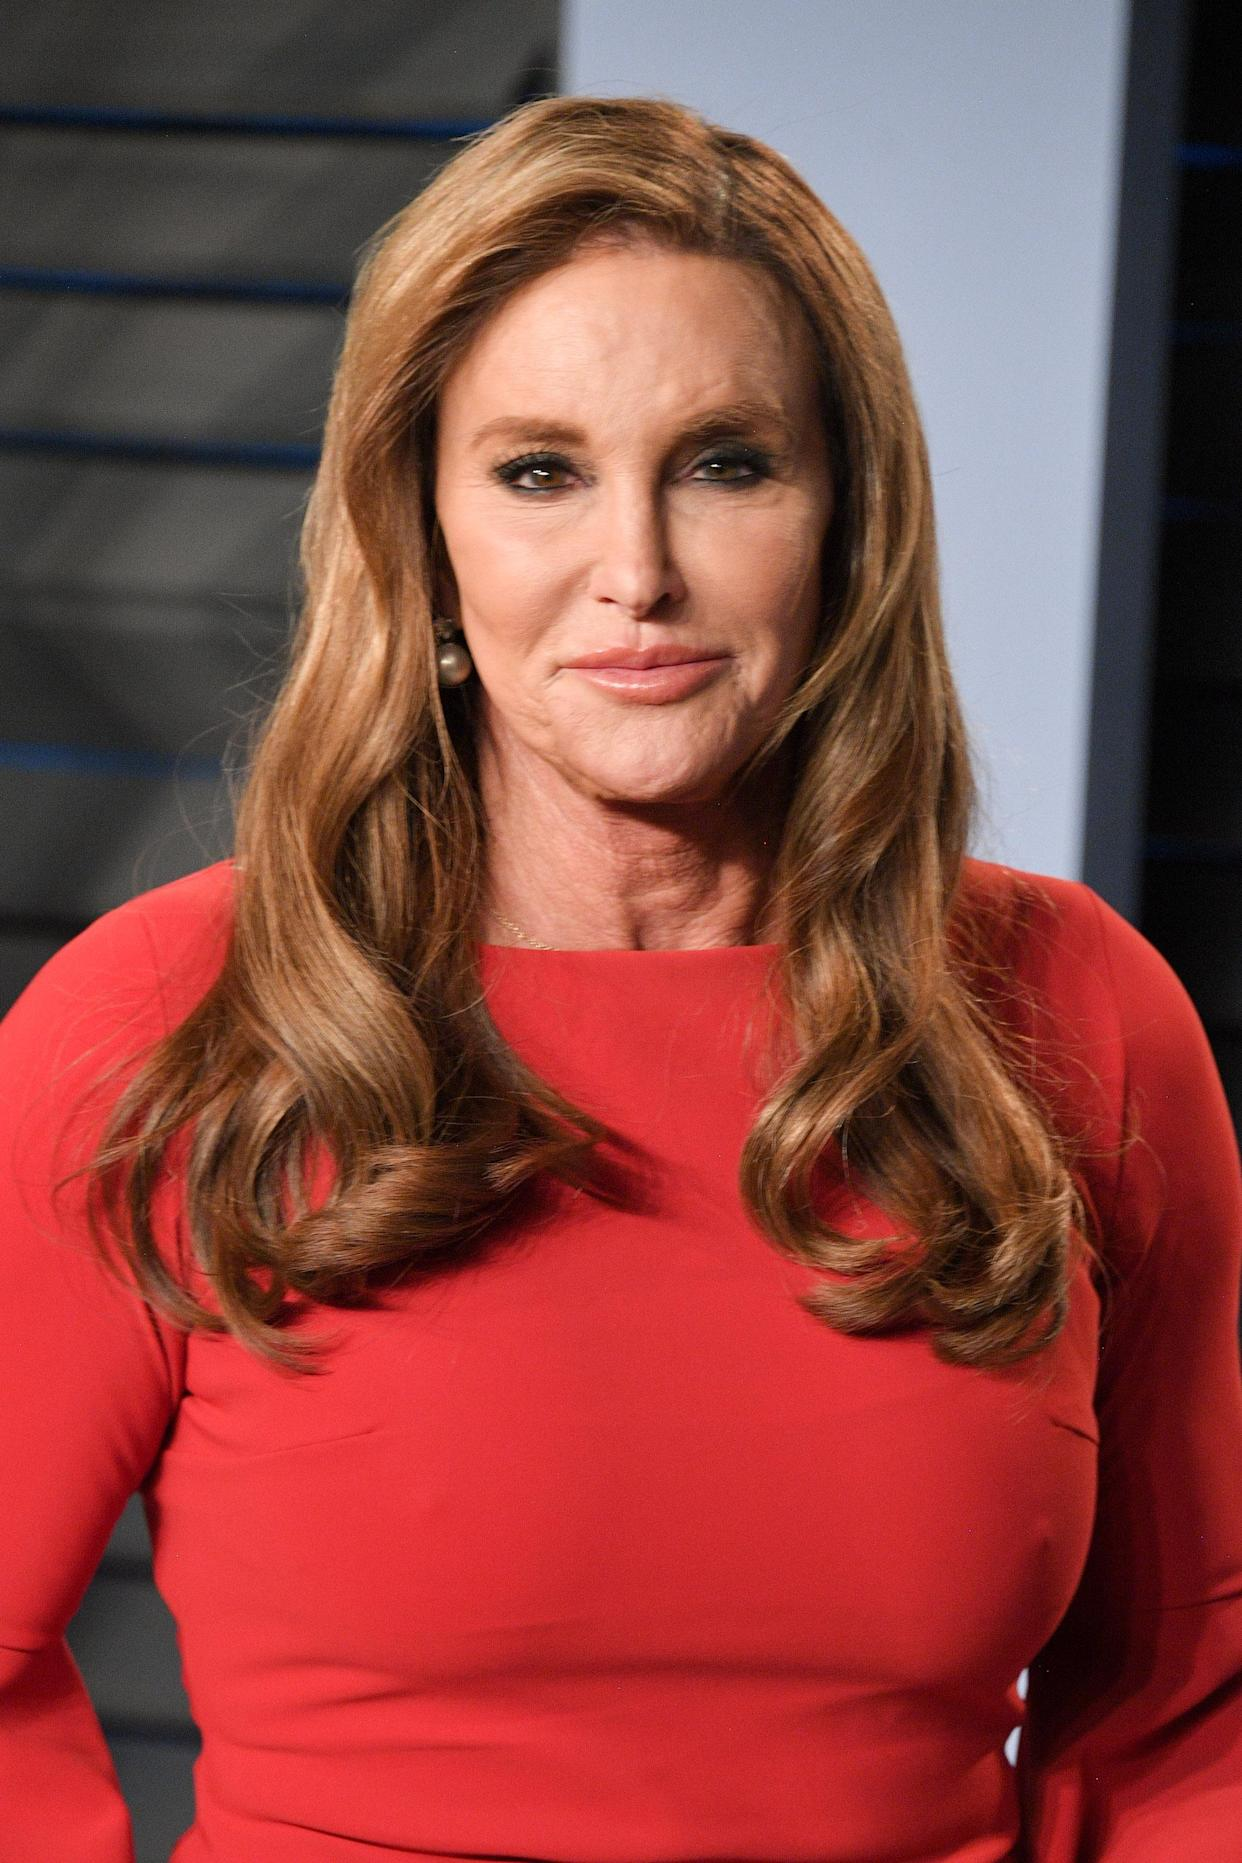 Caitlyn Jenner, at the 2018<em> Vanity Fair</em> Oscar Party on March 24, has skin cancer. (Photo: George Pimentel/WireImage)